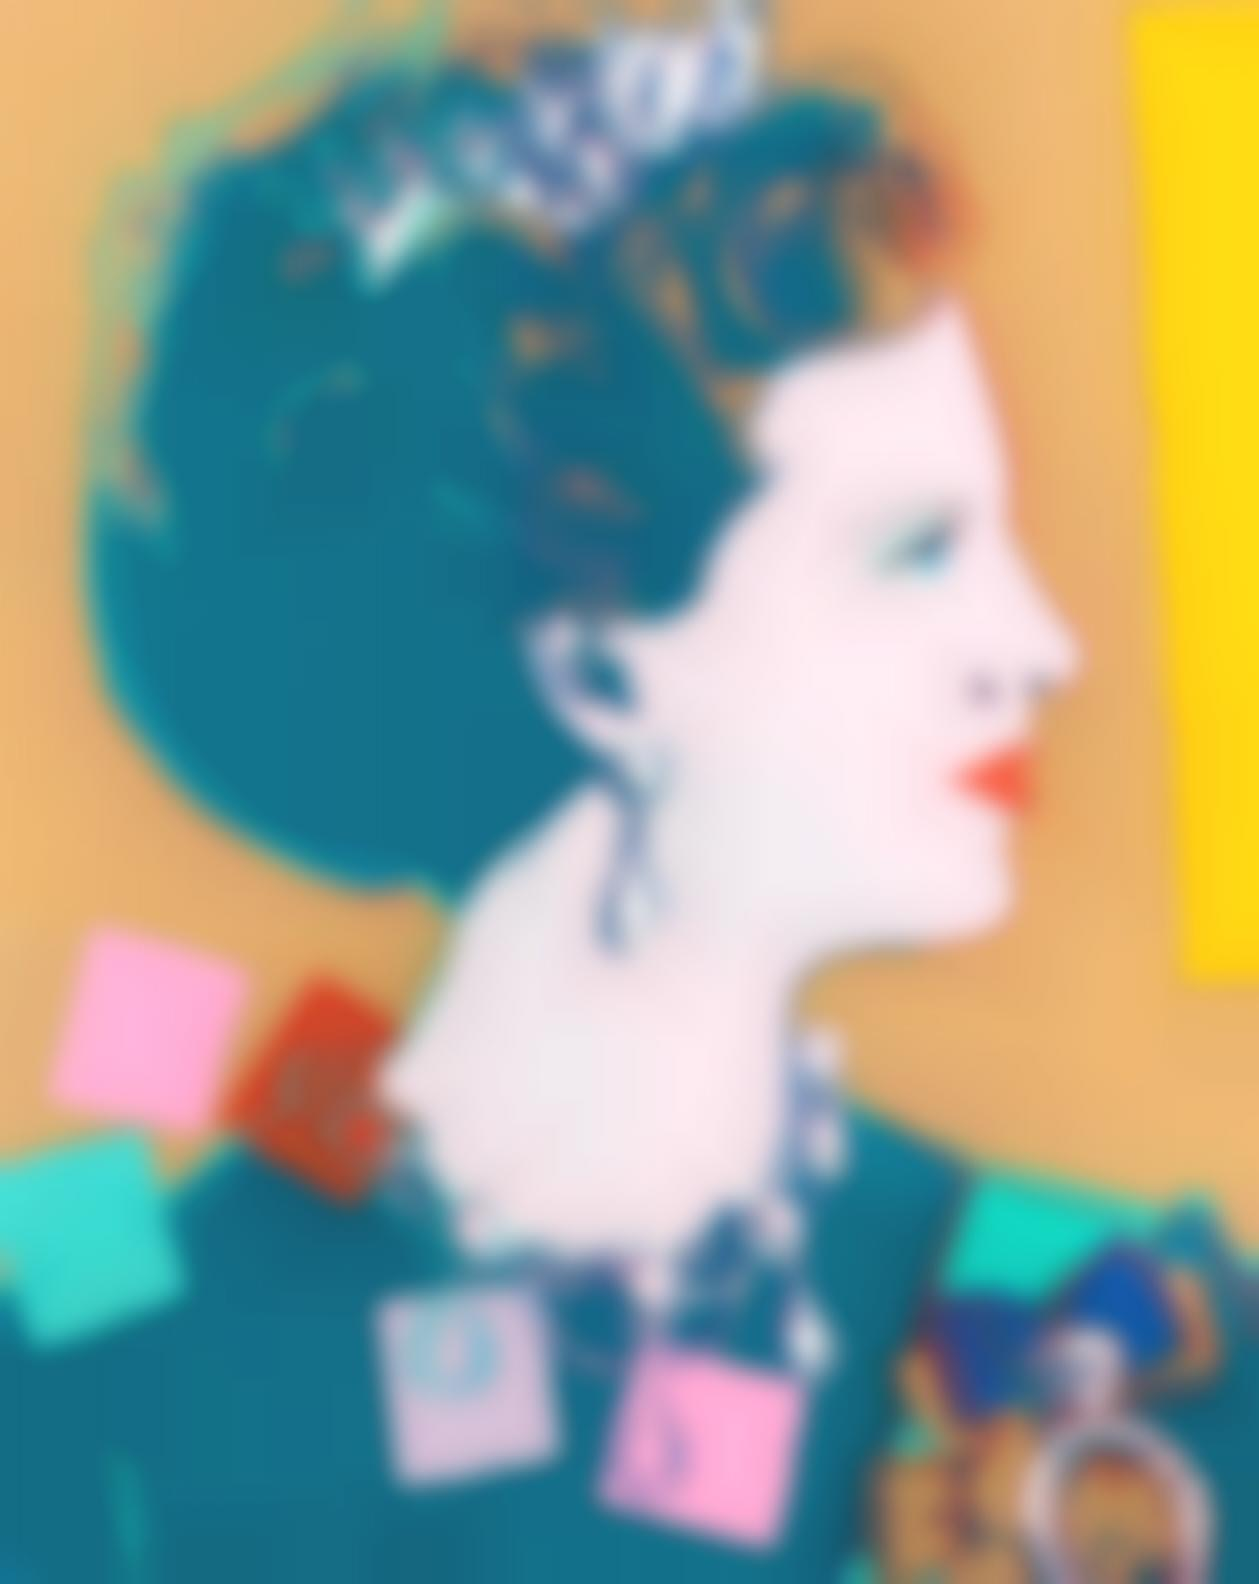 Andy Warhol-Queen Margrethe II, From Reigning Queens (Feldman & Schellmann Iib.342)-1985